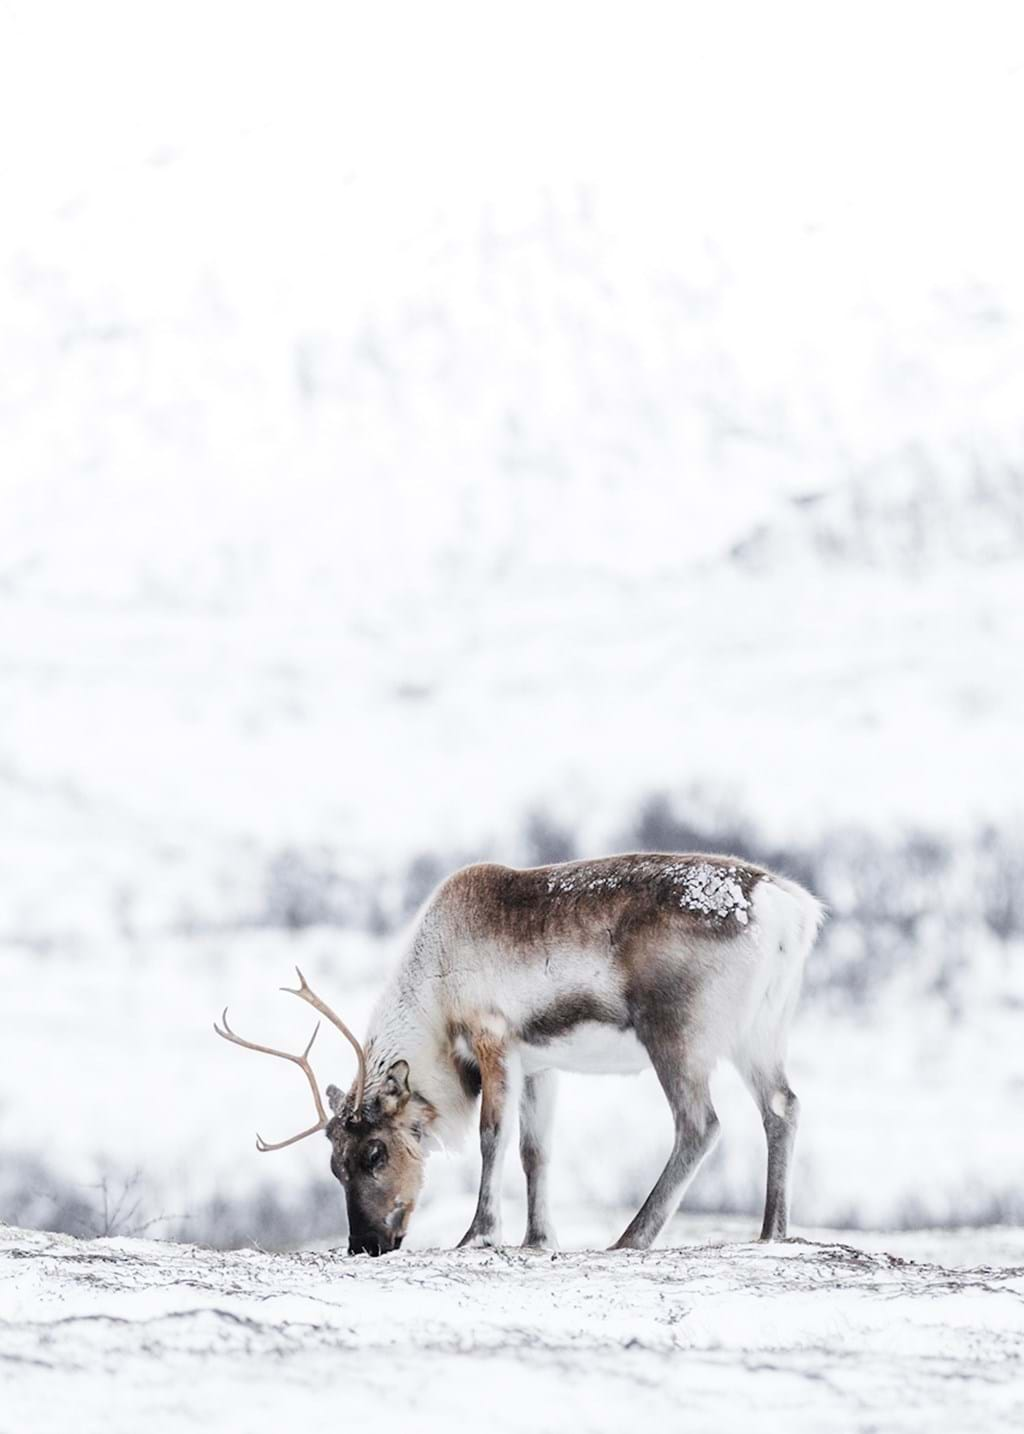 Poster: Life In The Mountains - This amazing picture of a reindeer in the mountain is almost mesmerizing, w...